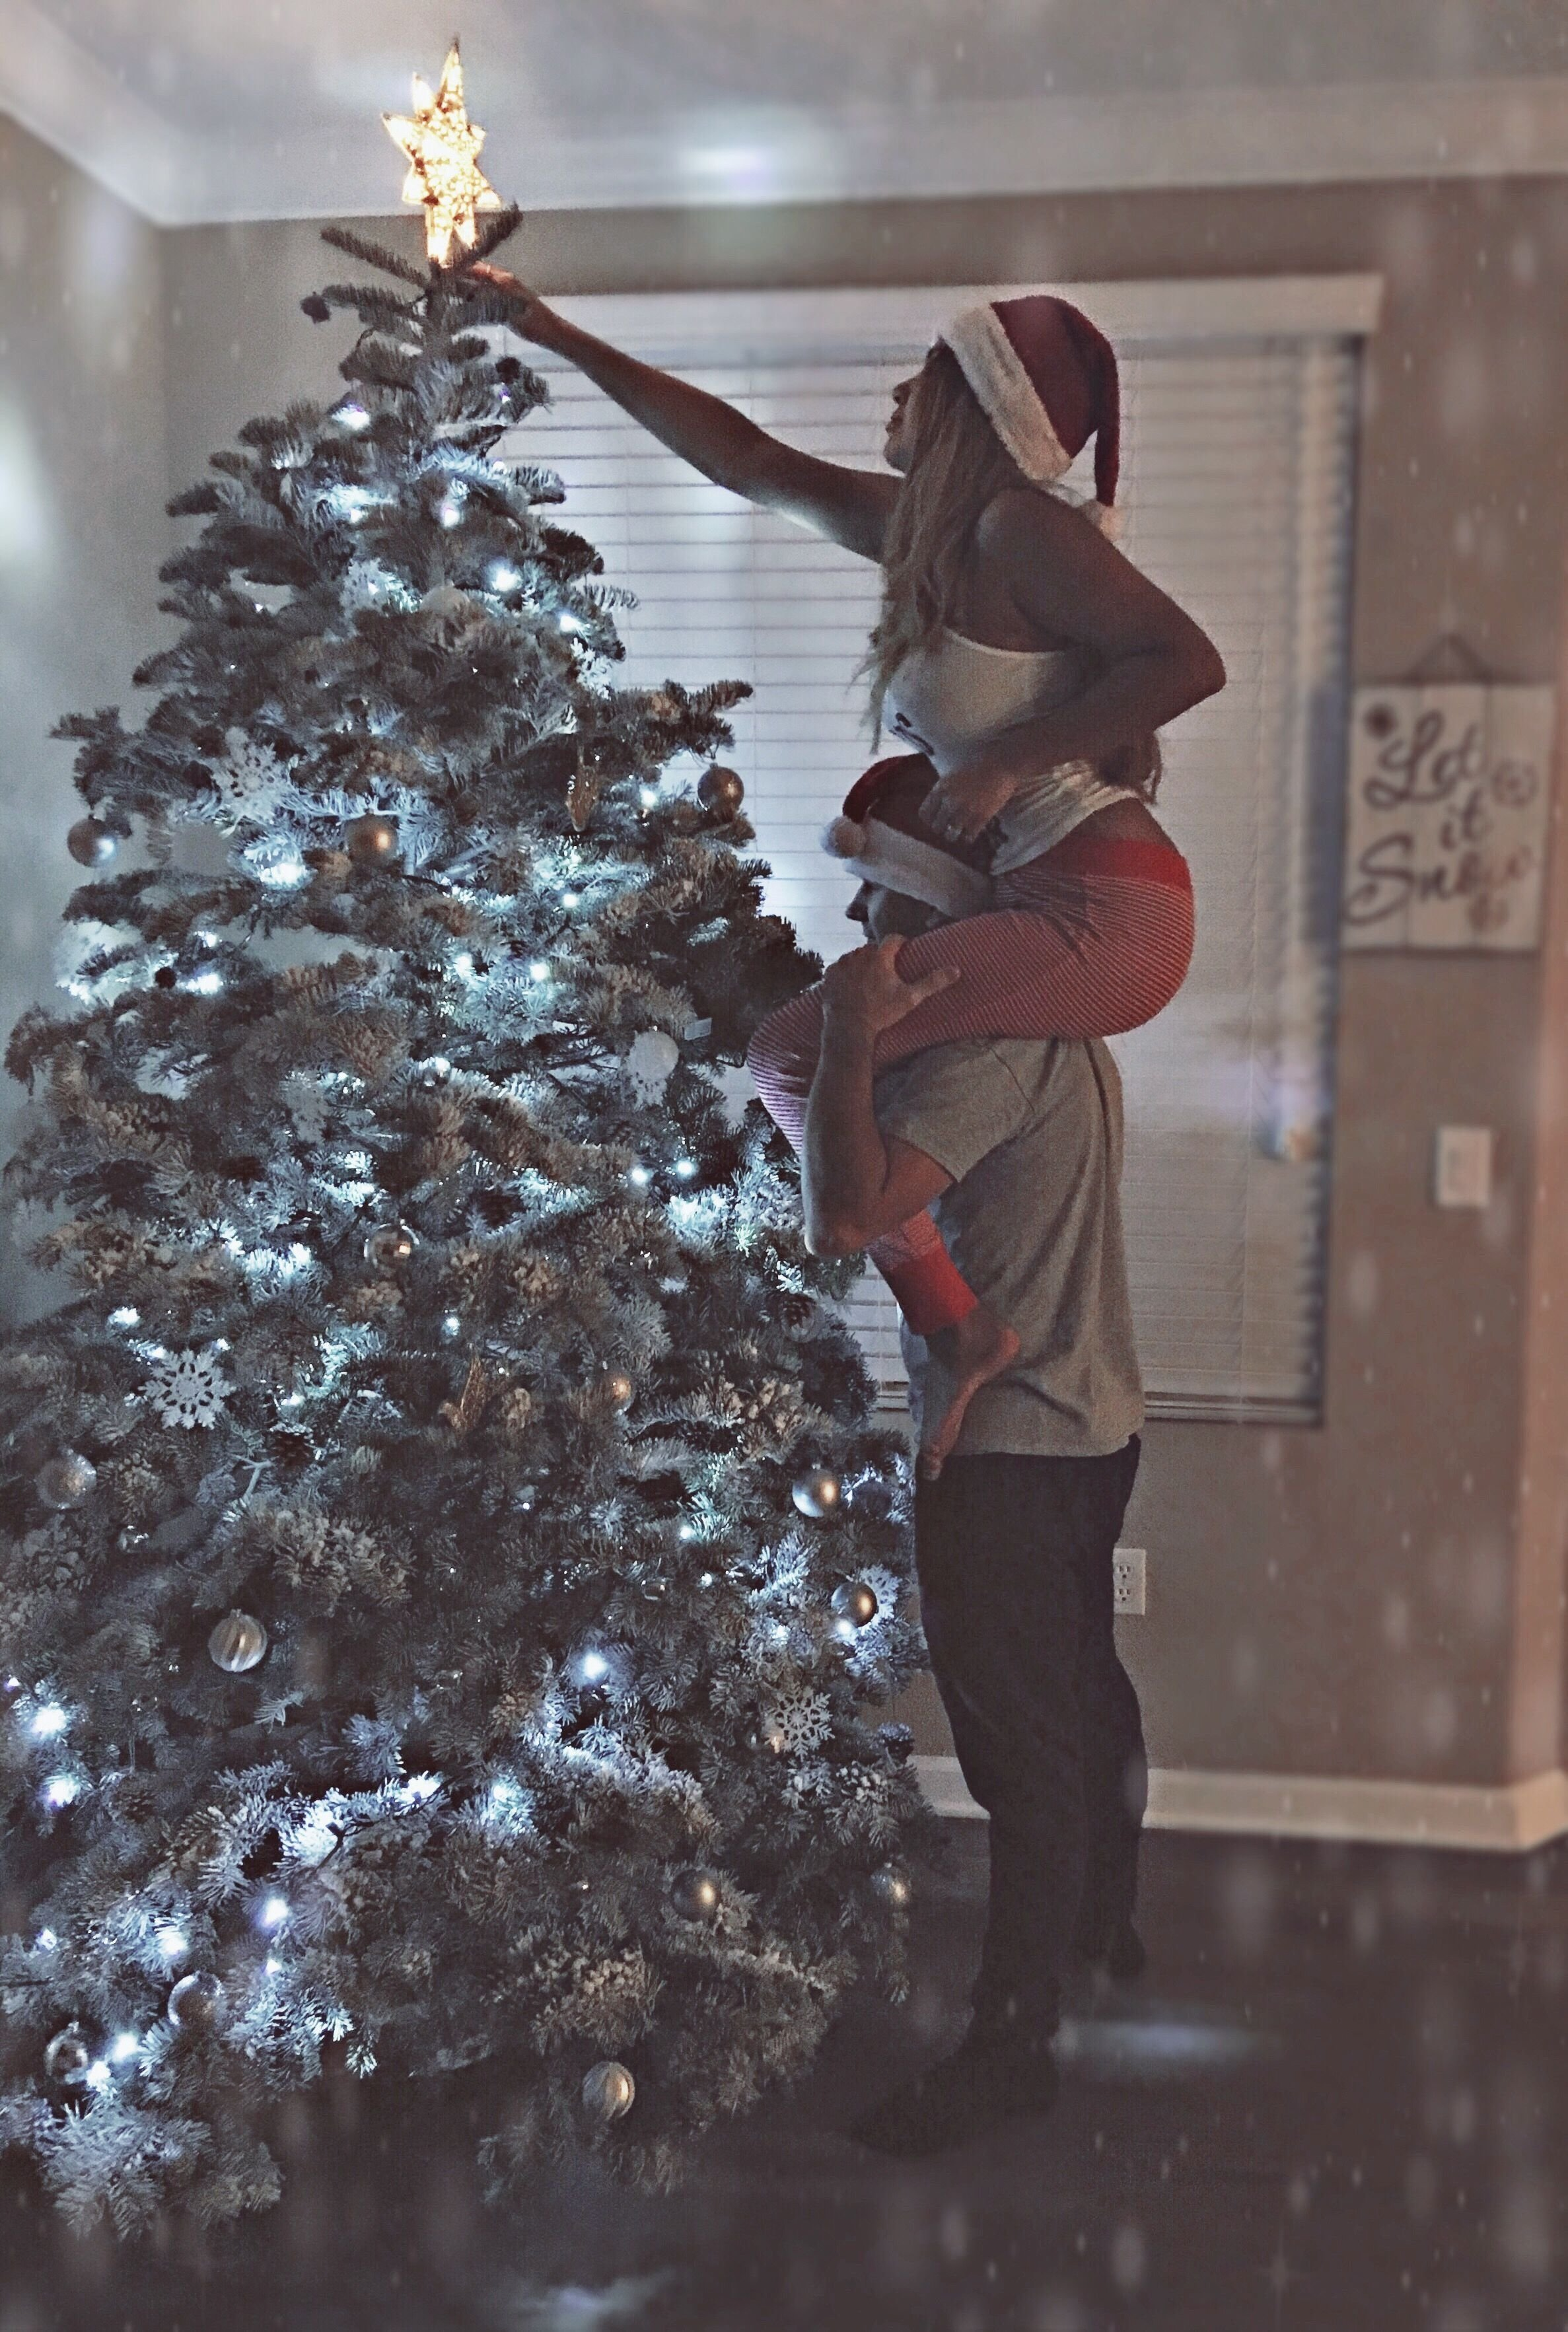 10 Most Recommended Cute Christmas Picture Ideas For Couples selenakulikovskiy danikkulikovskiy instagram couple goals photo 3 2020